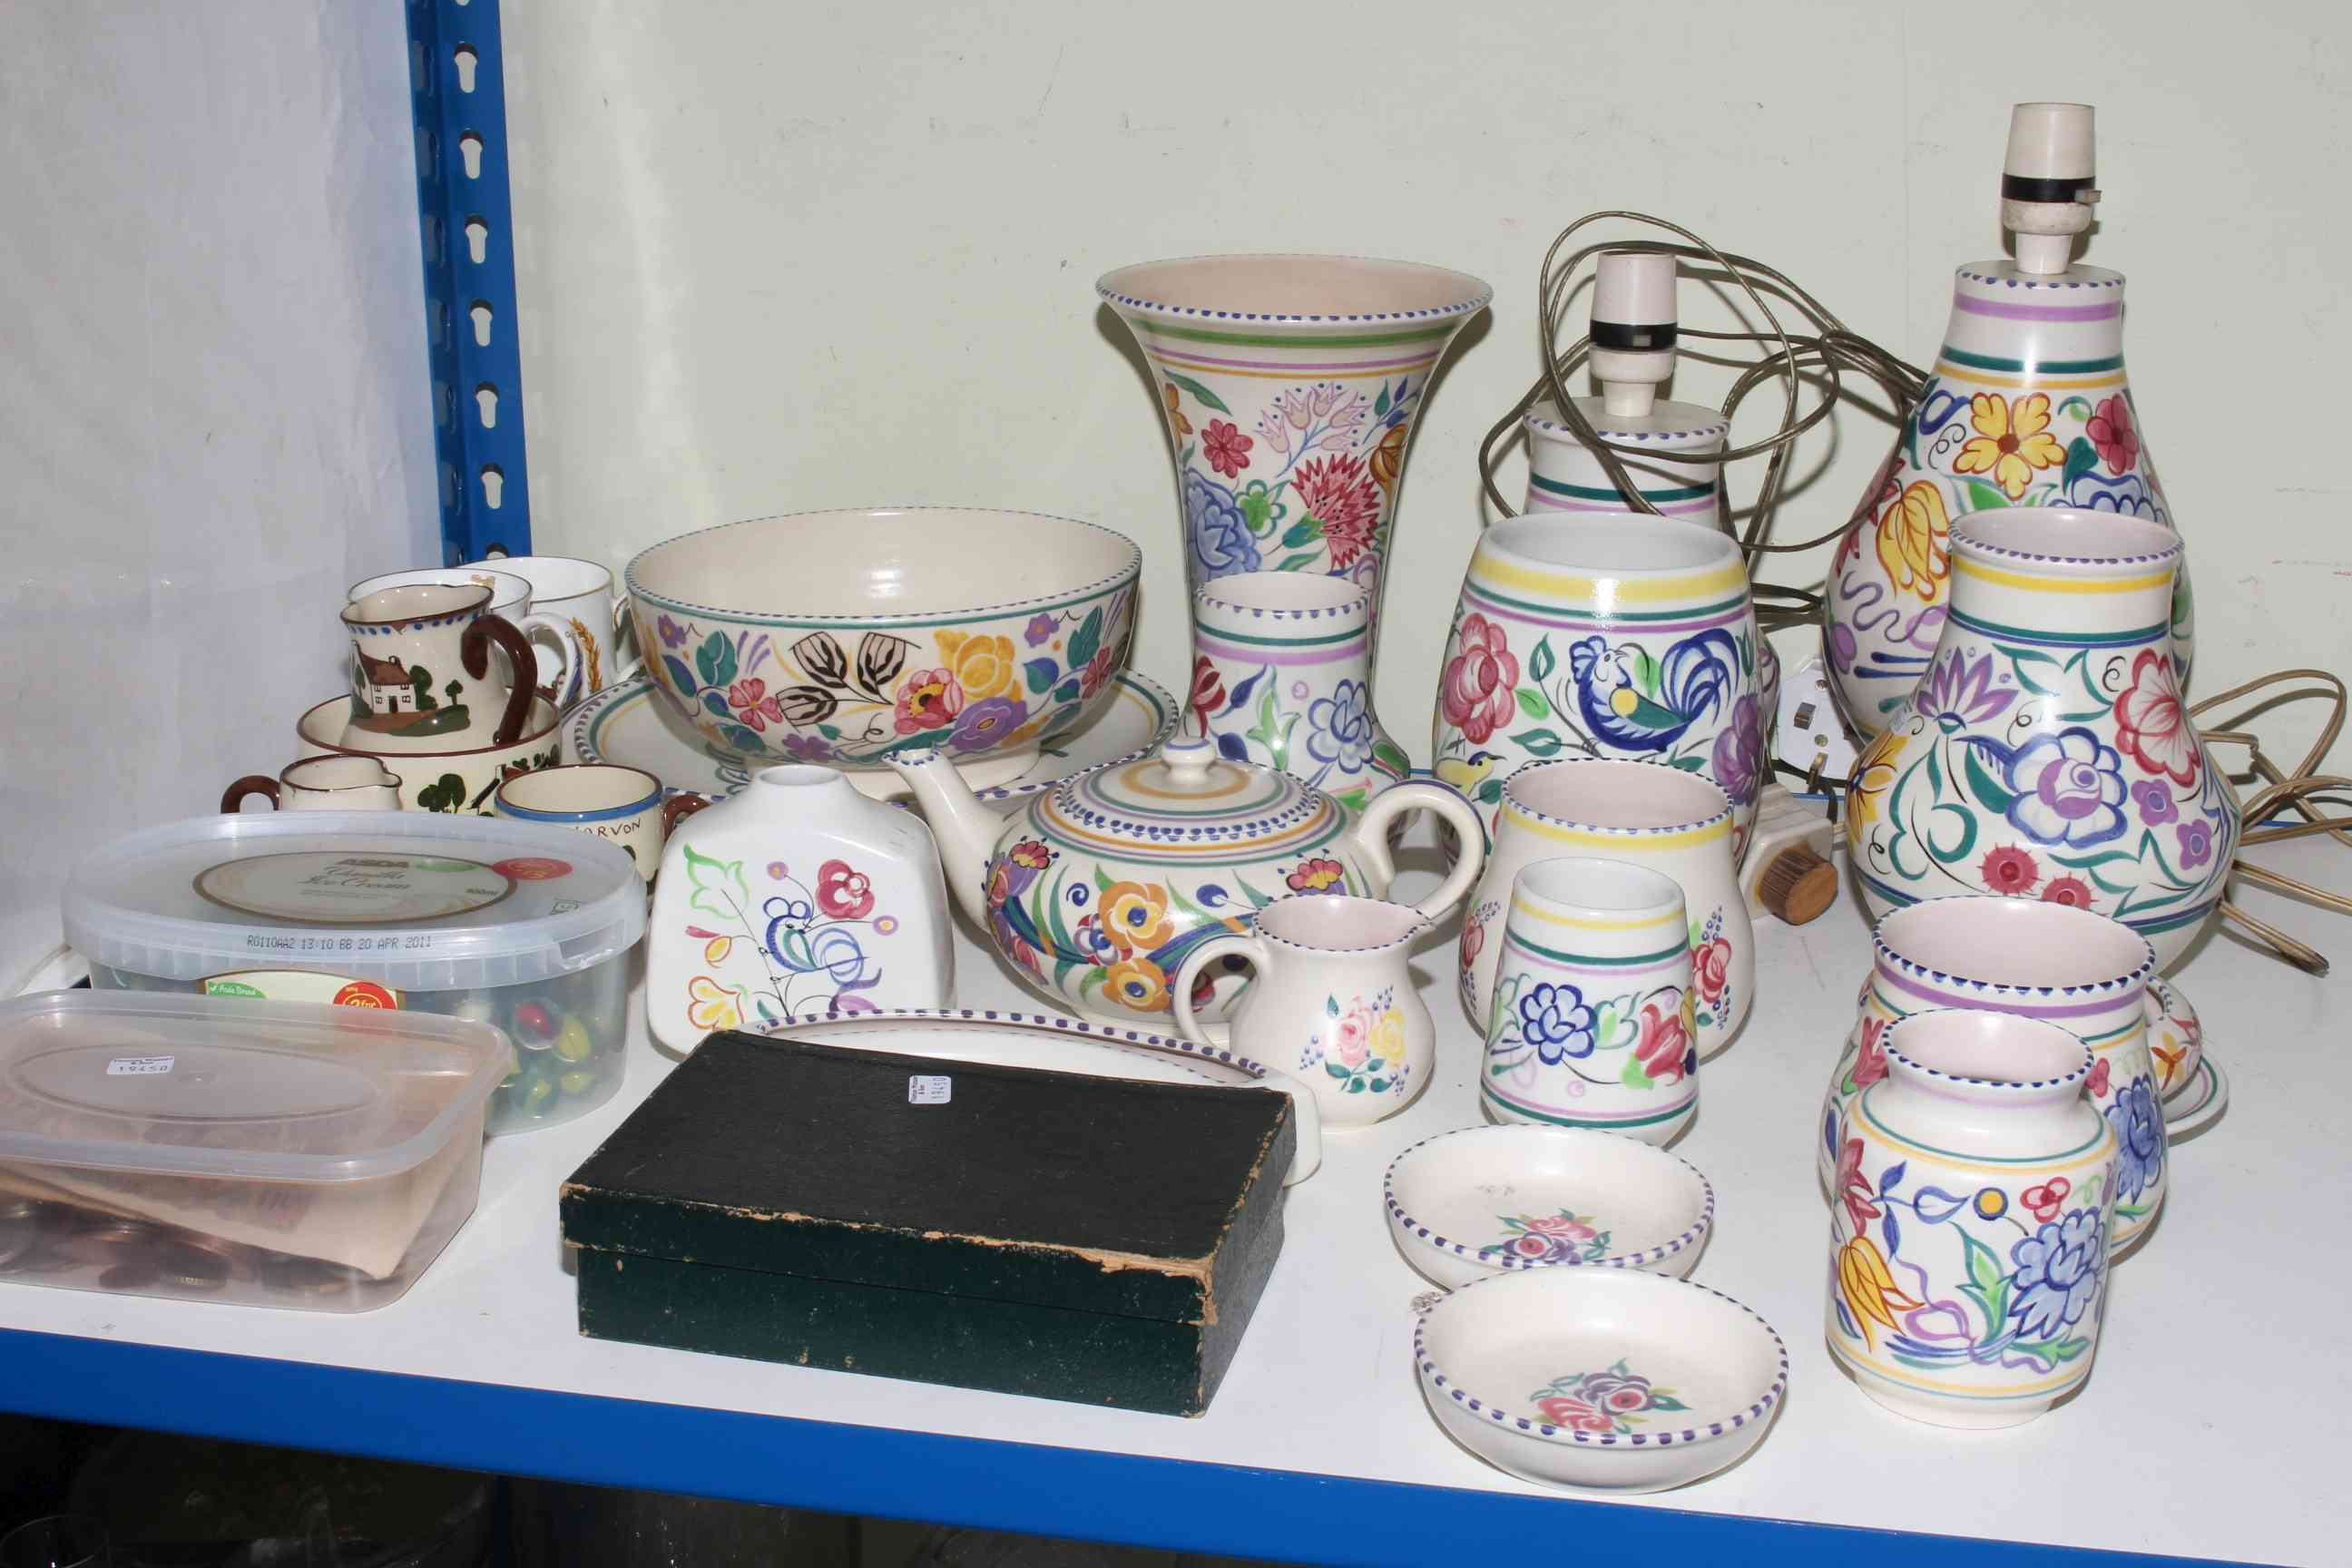 Lot 55 - Collection of Poole Pottery lamps, vases, bowl, teapot, plates, etc, tub of marbles,